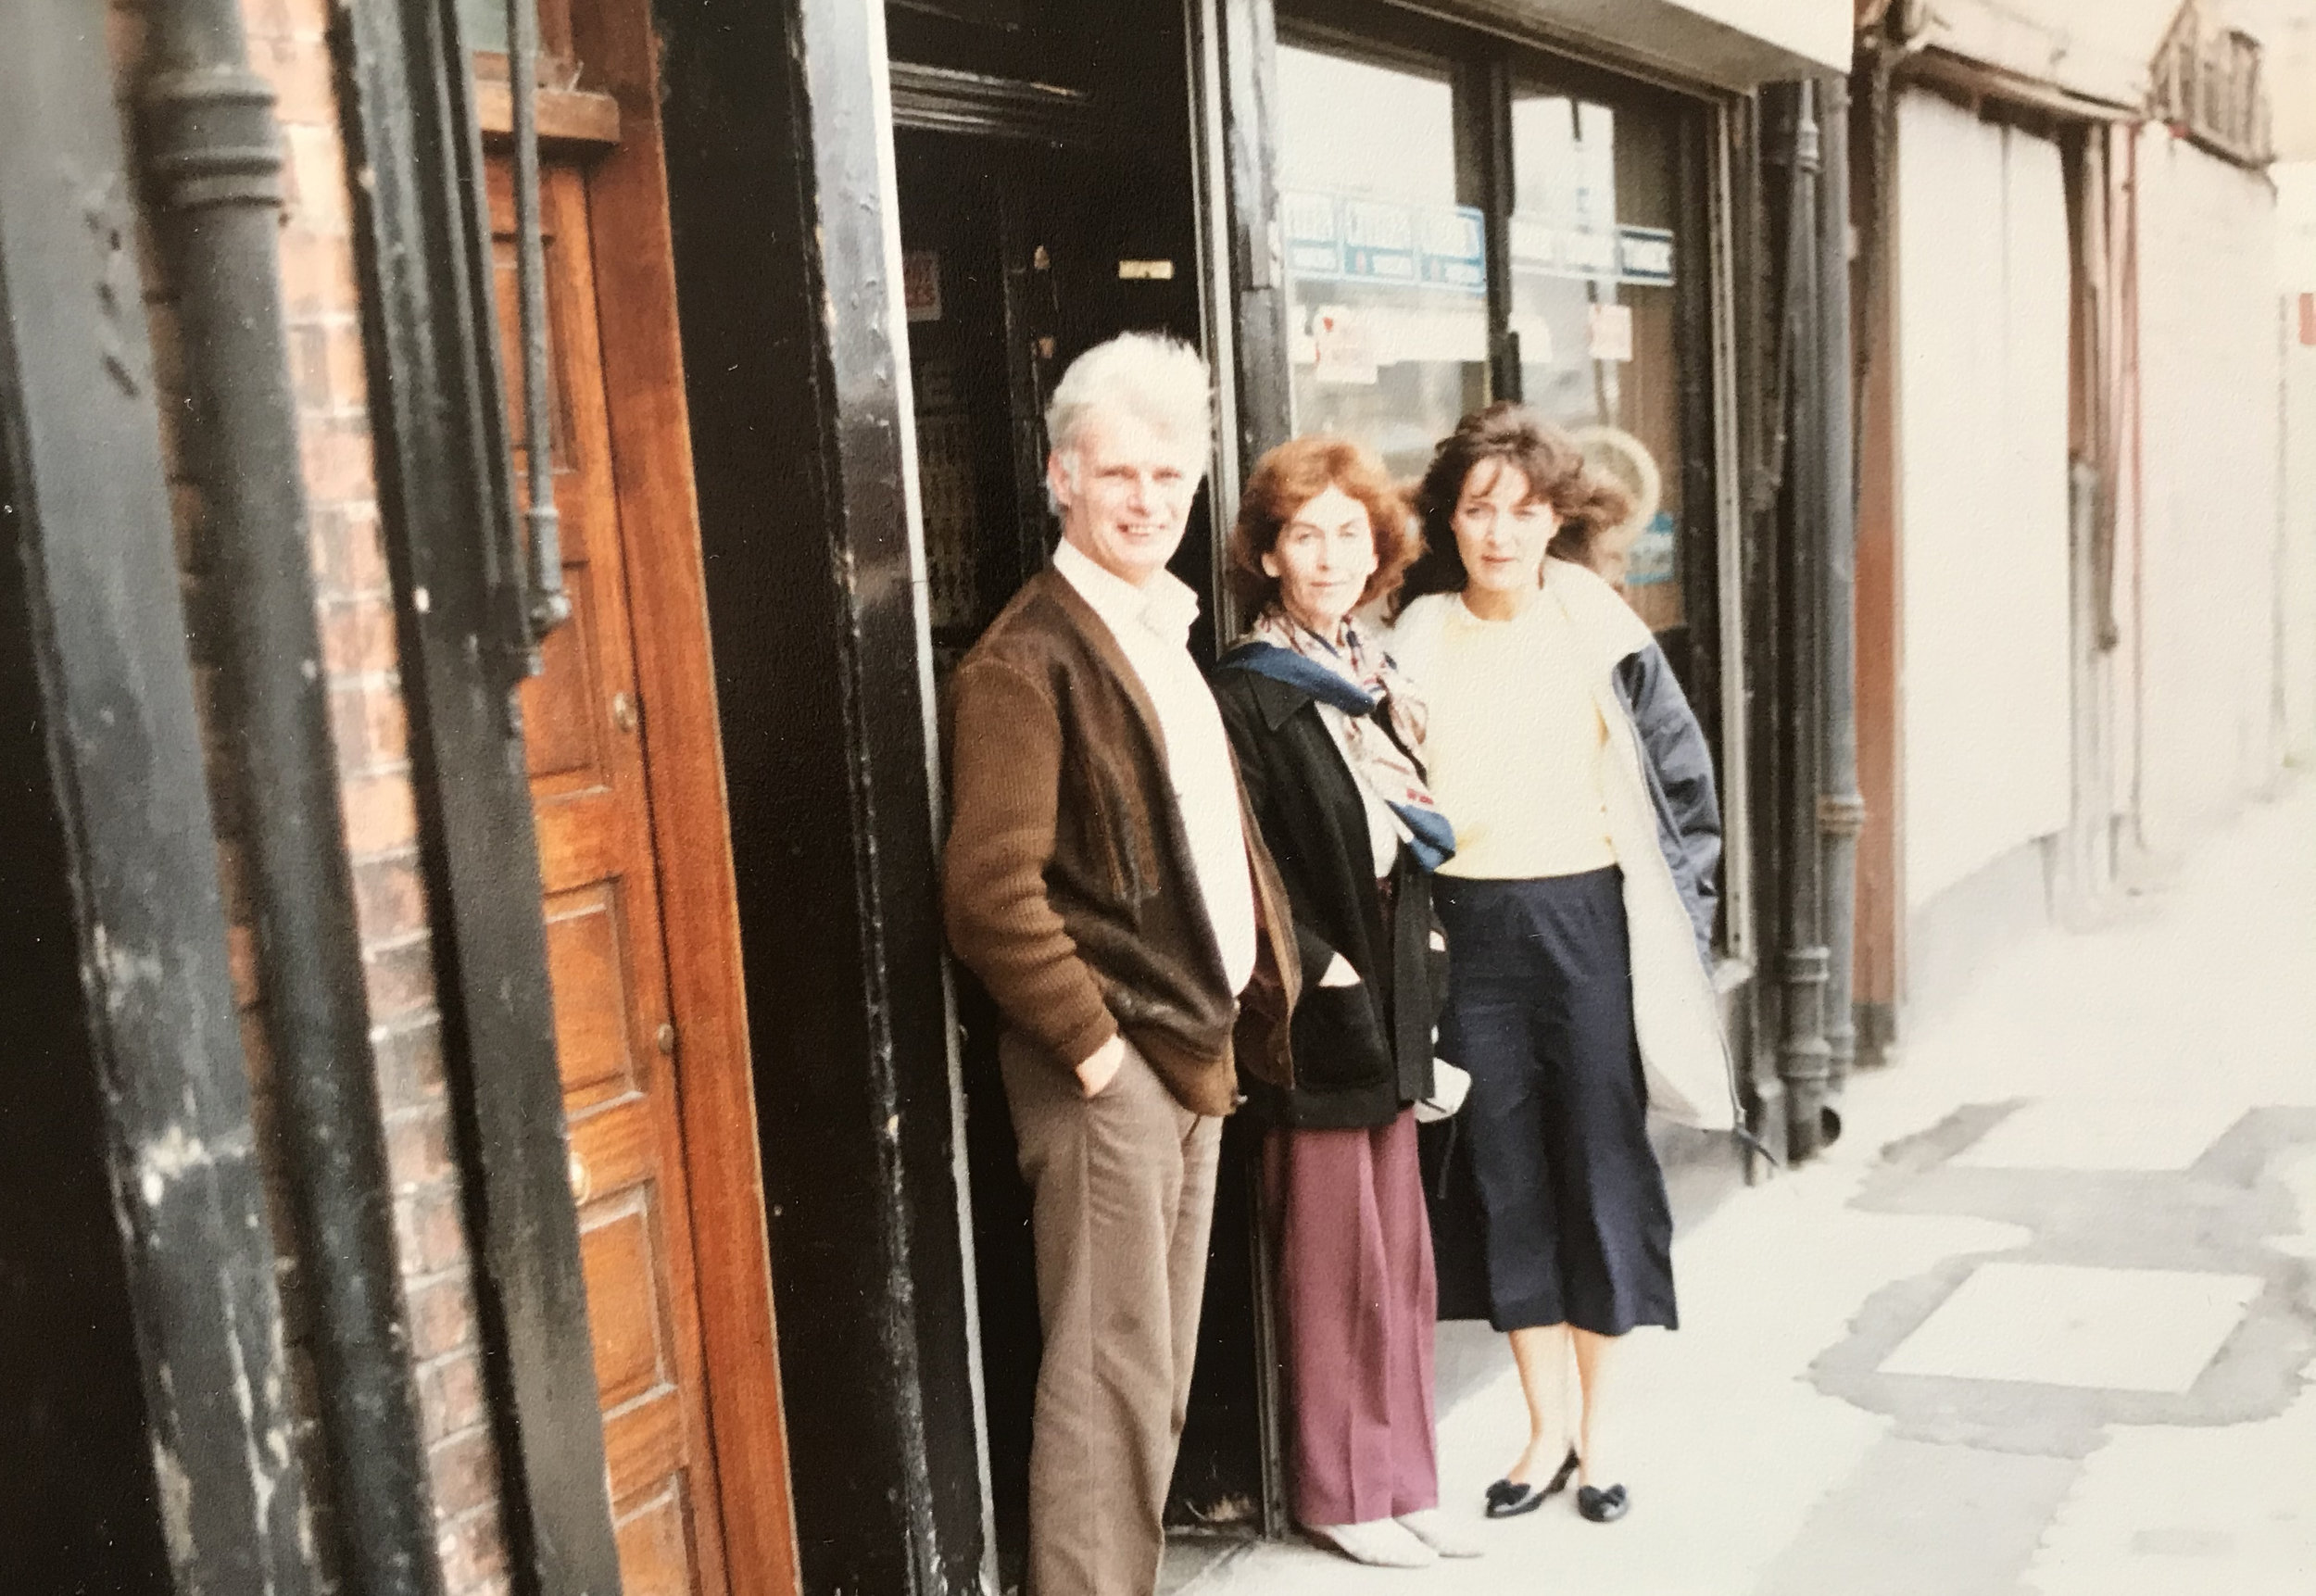 Elaine and the Madigans outside of their Jewellery Shop